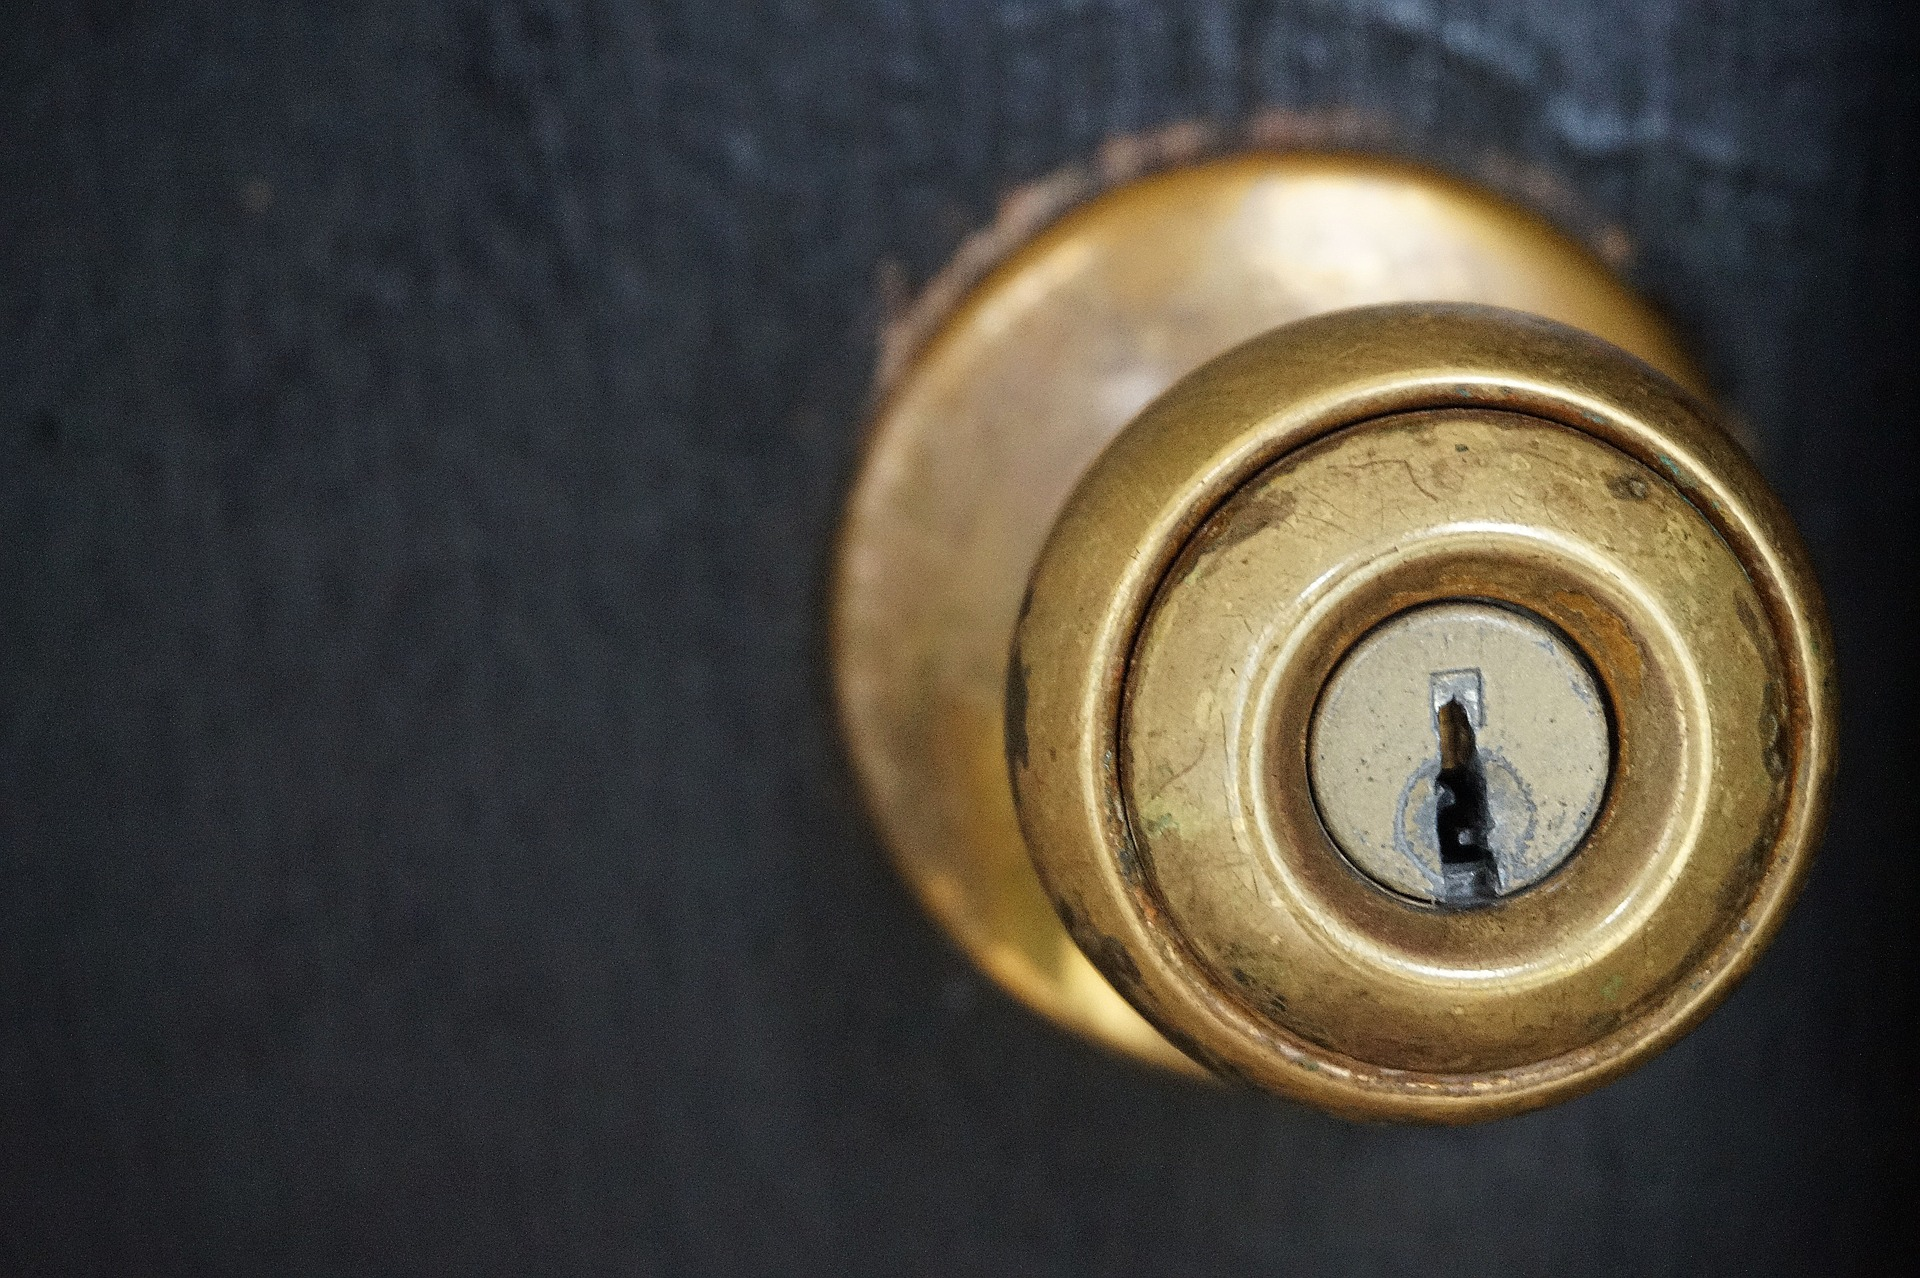 "When we see a keyhole, we intuitively know that we can insert a key into it and turn the knob. There are actually two examples of affordance going on here: one example is the keyhole, the second is the door knob. Keyholes ""afford"" (are for) keys. Door knobs afford turning."